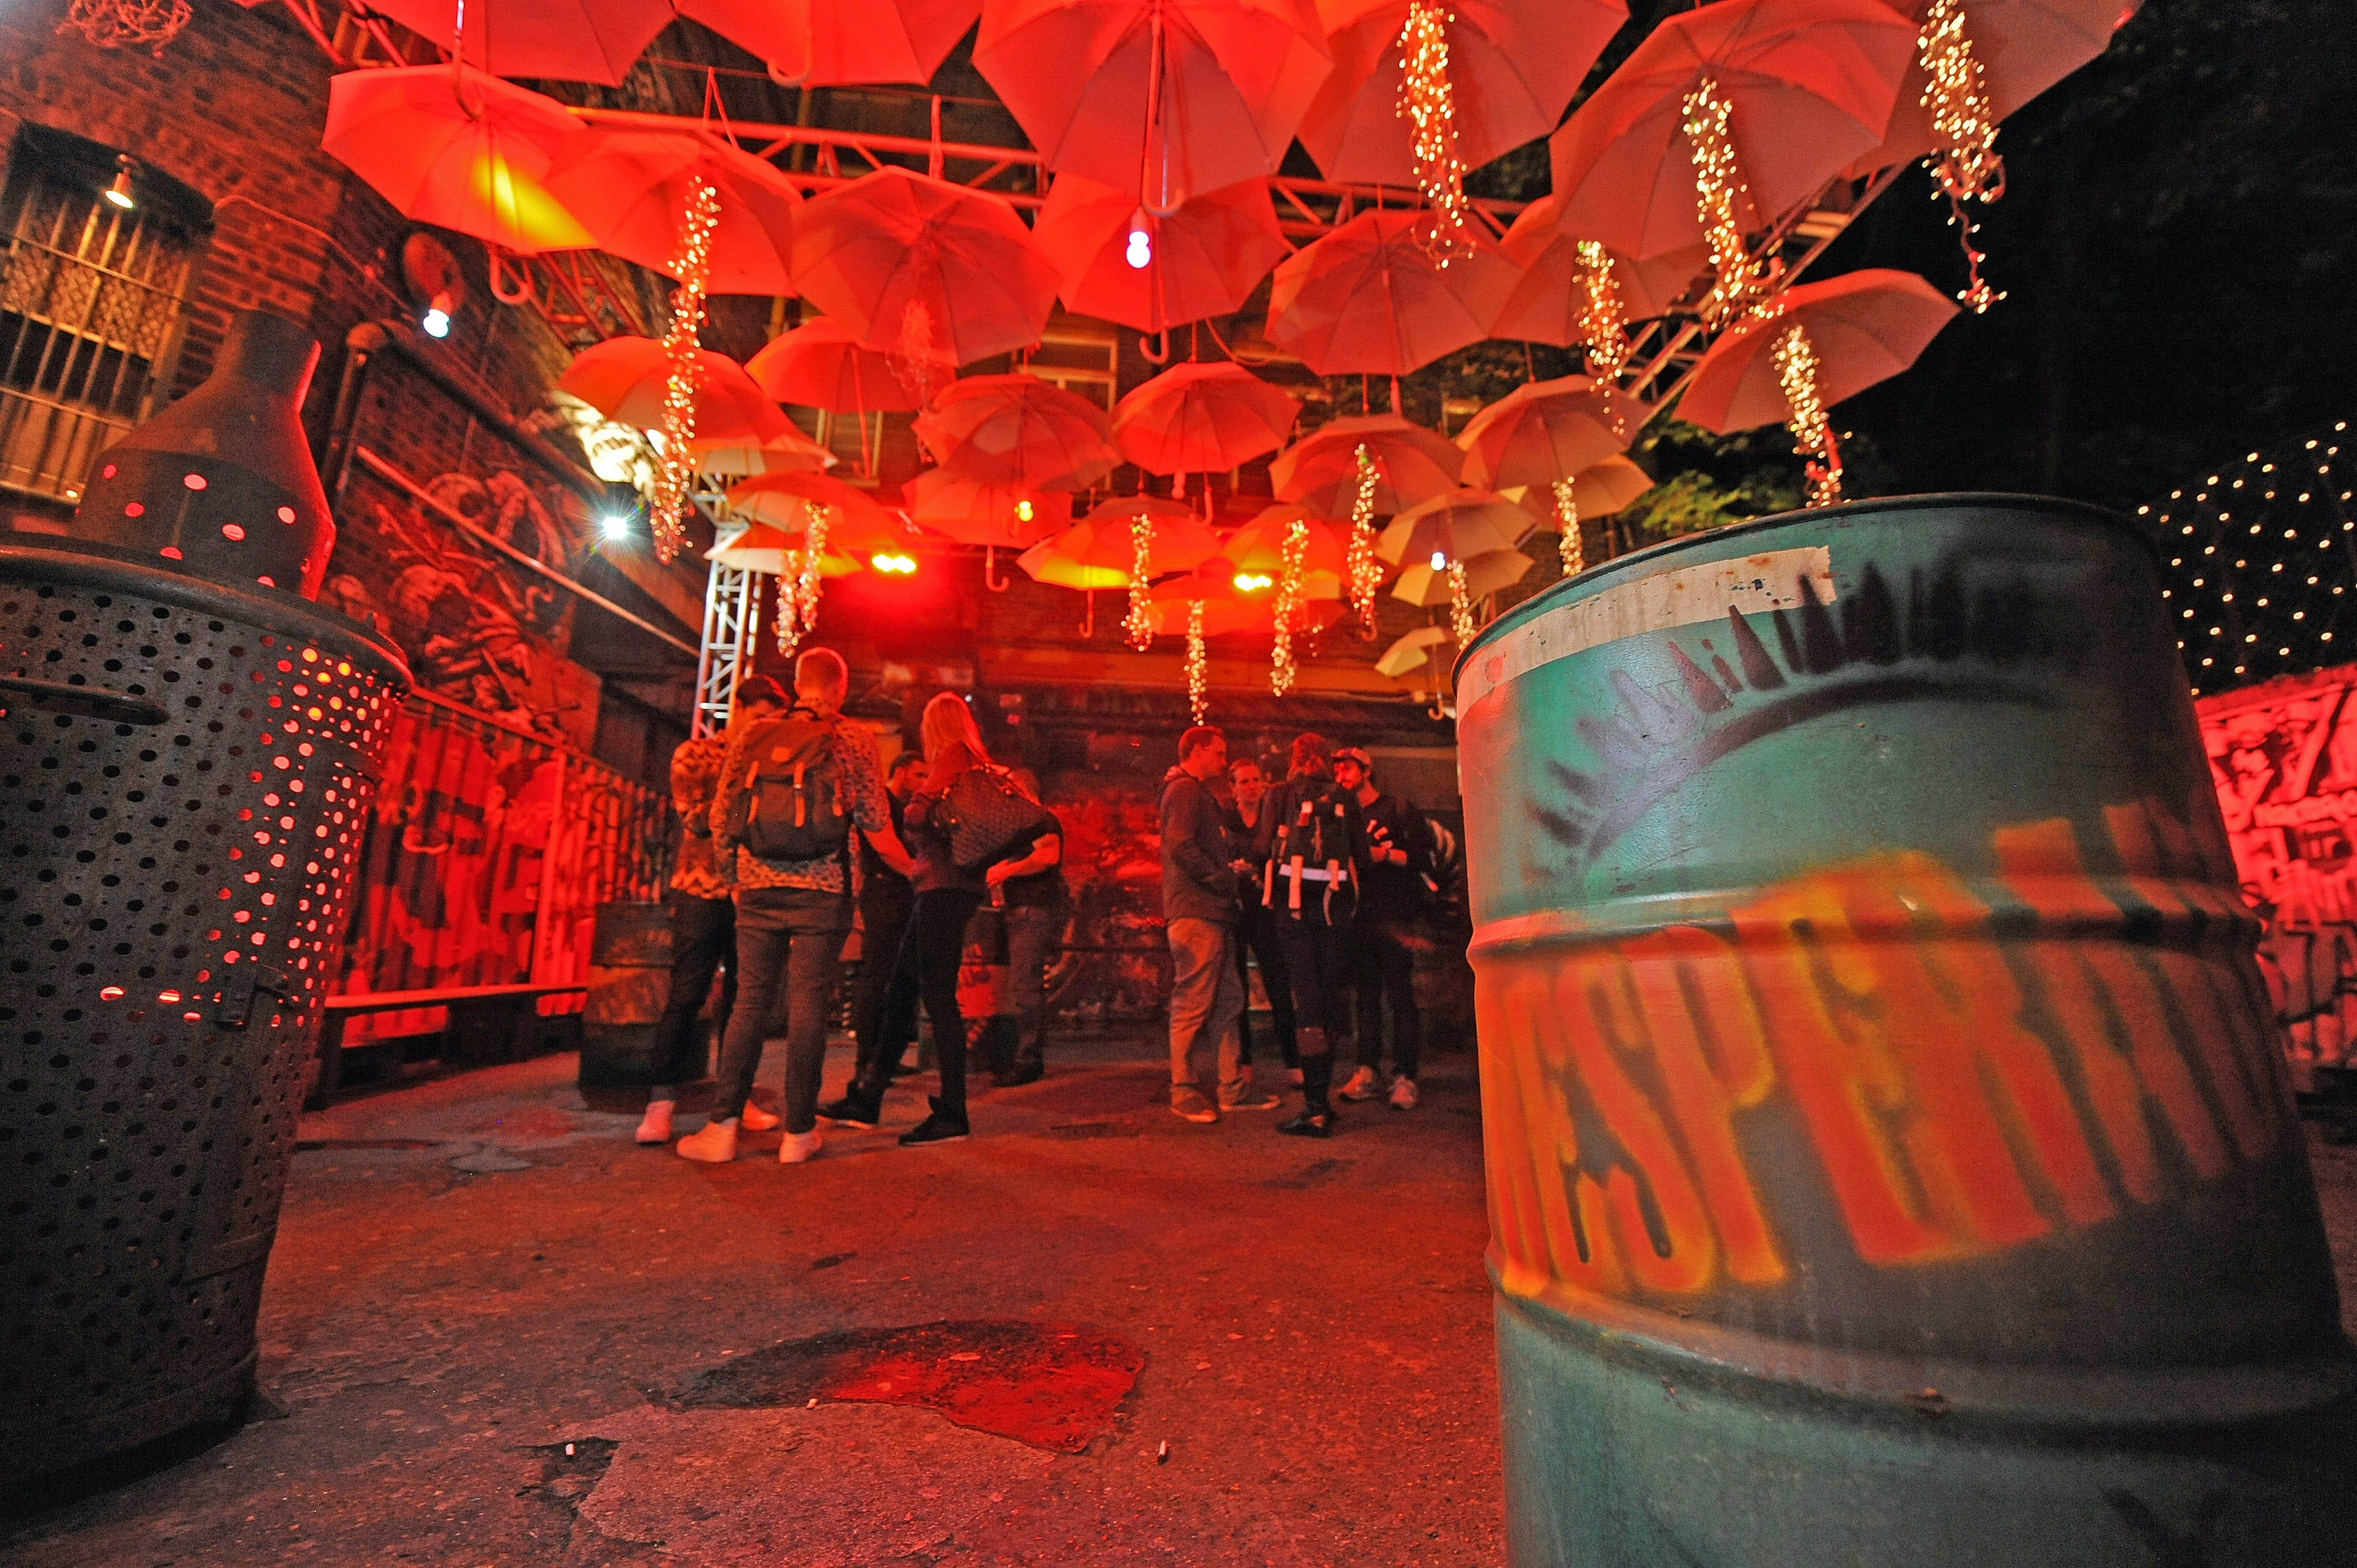 Desperados is hoping to win over younger drinkers with multi-sensory parties.